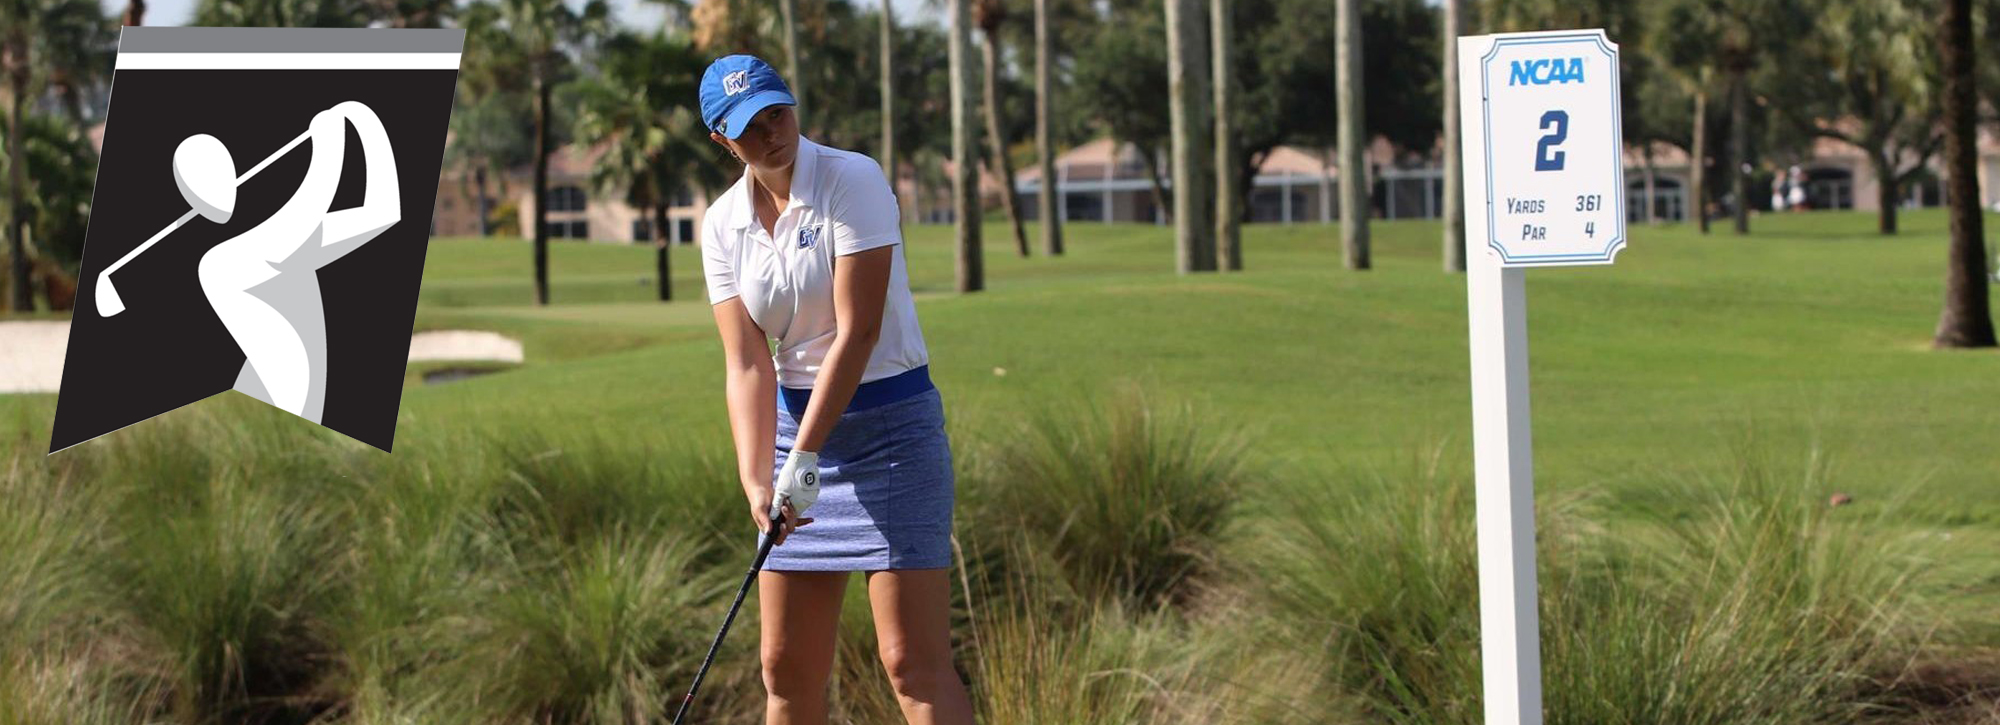 Lakers place 14th in NCAA Women's Golf Championship